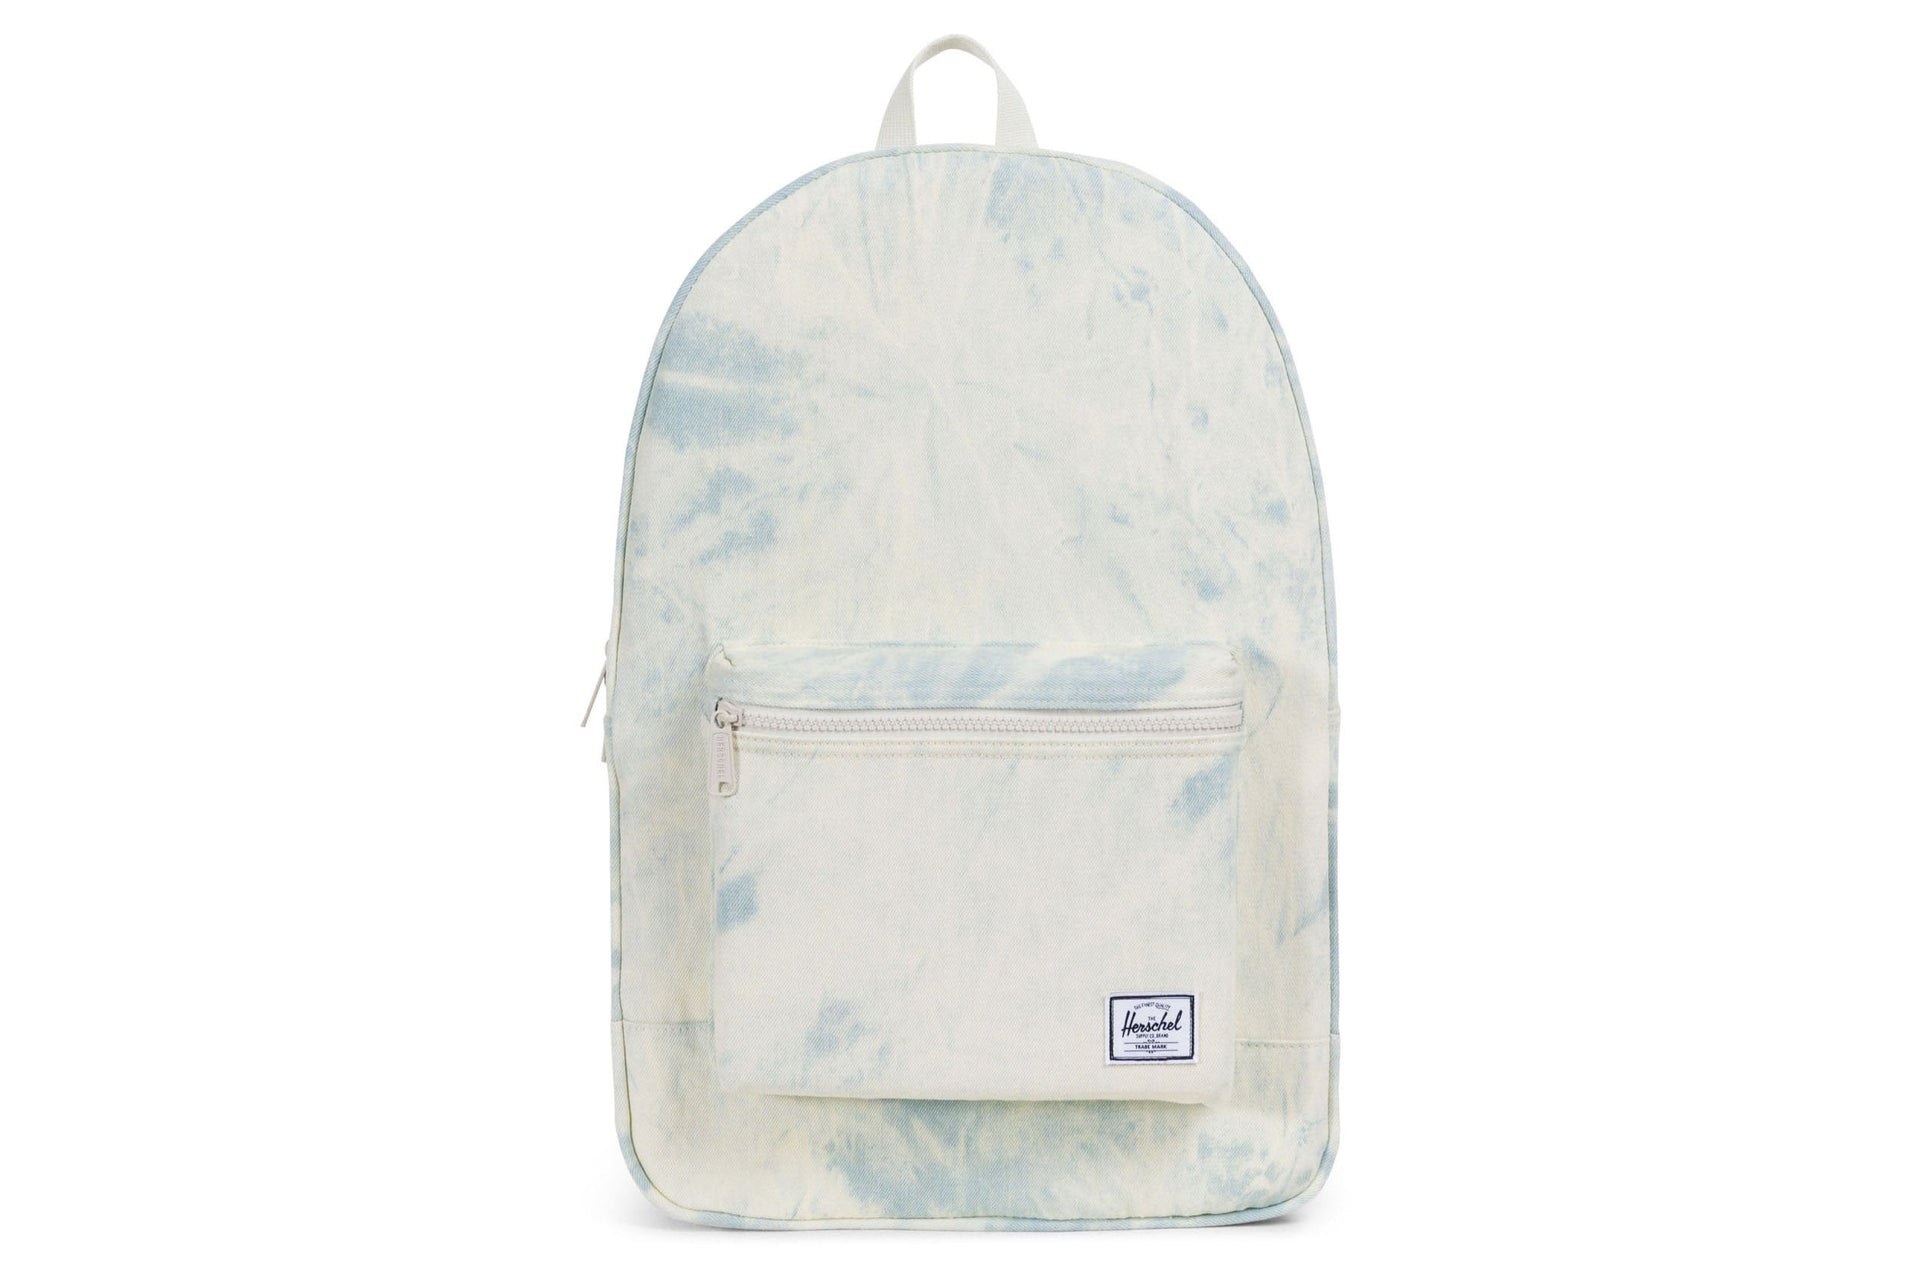 PA DAYPACK 10 OZ. CANVAS BAGS HERSCHEL BLEACHED DENIM ONE SIZE